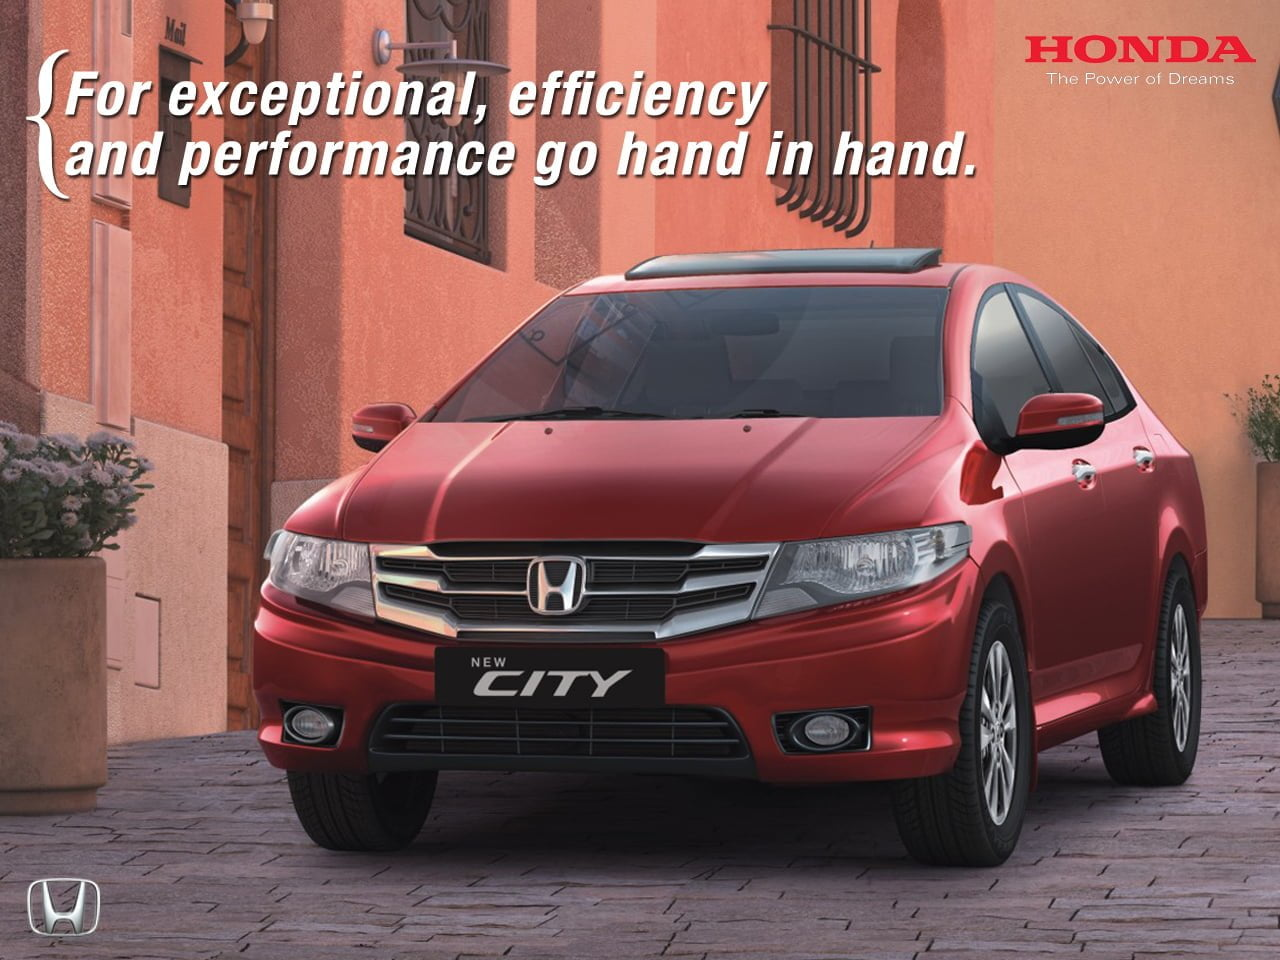 New Honda City View 1